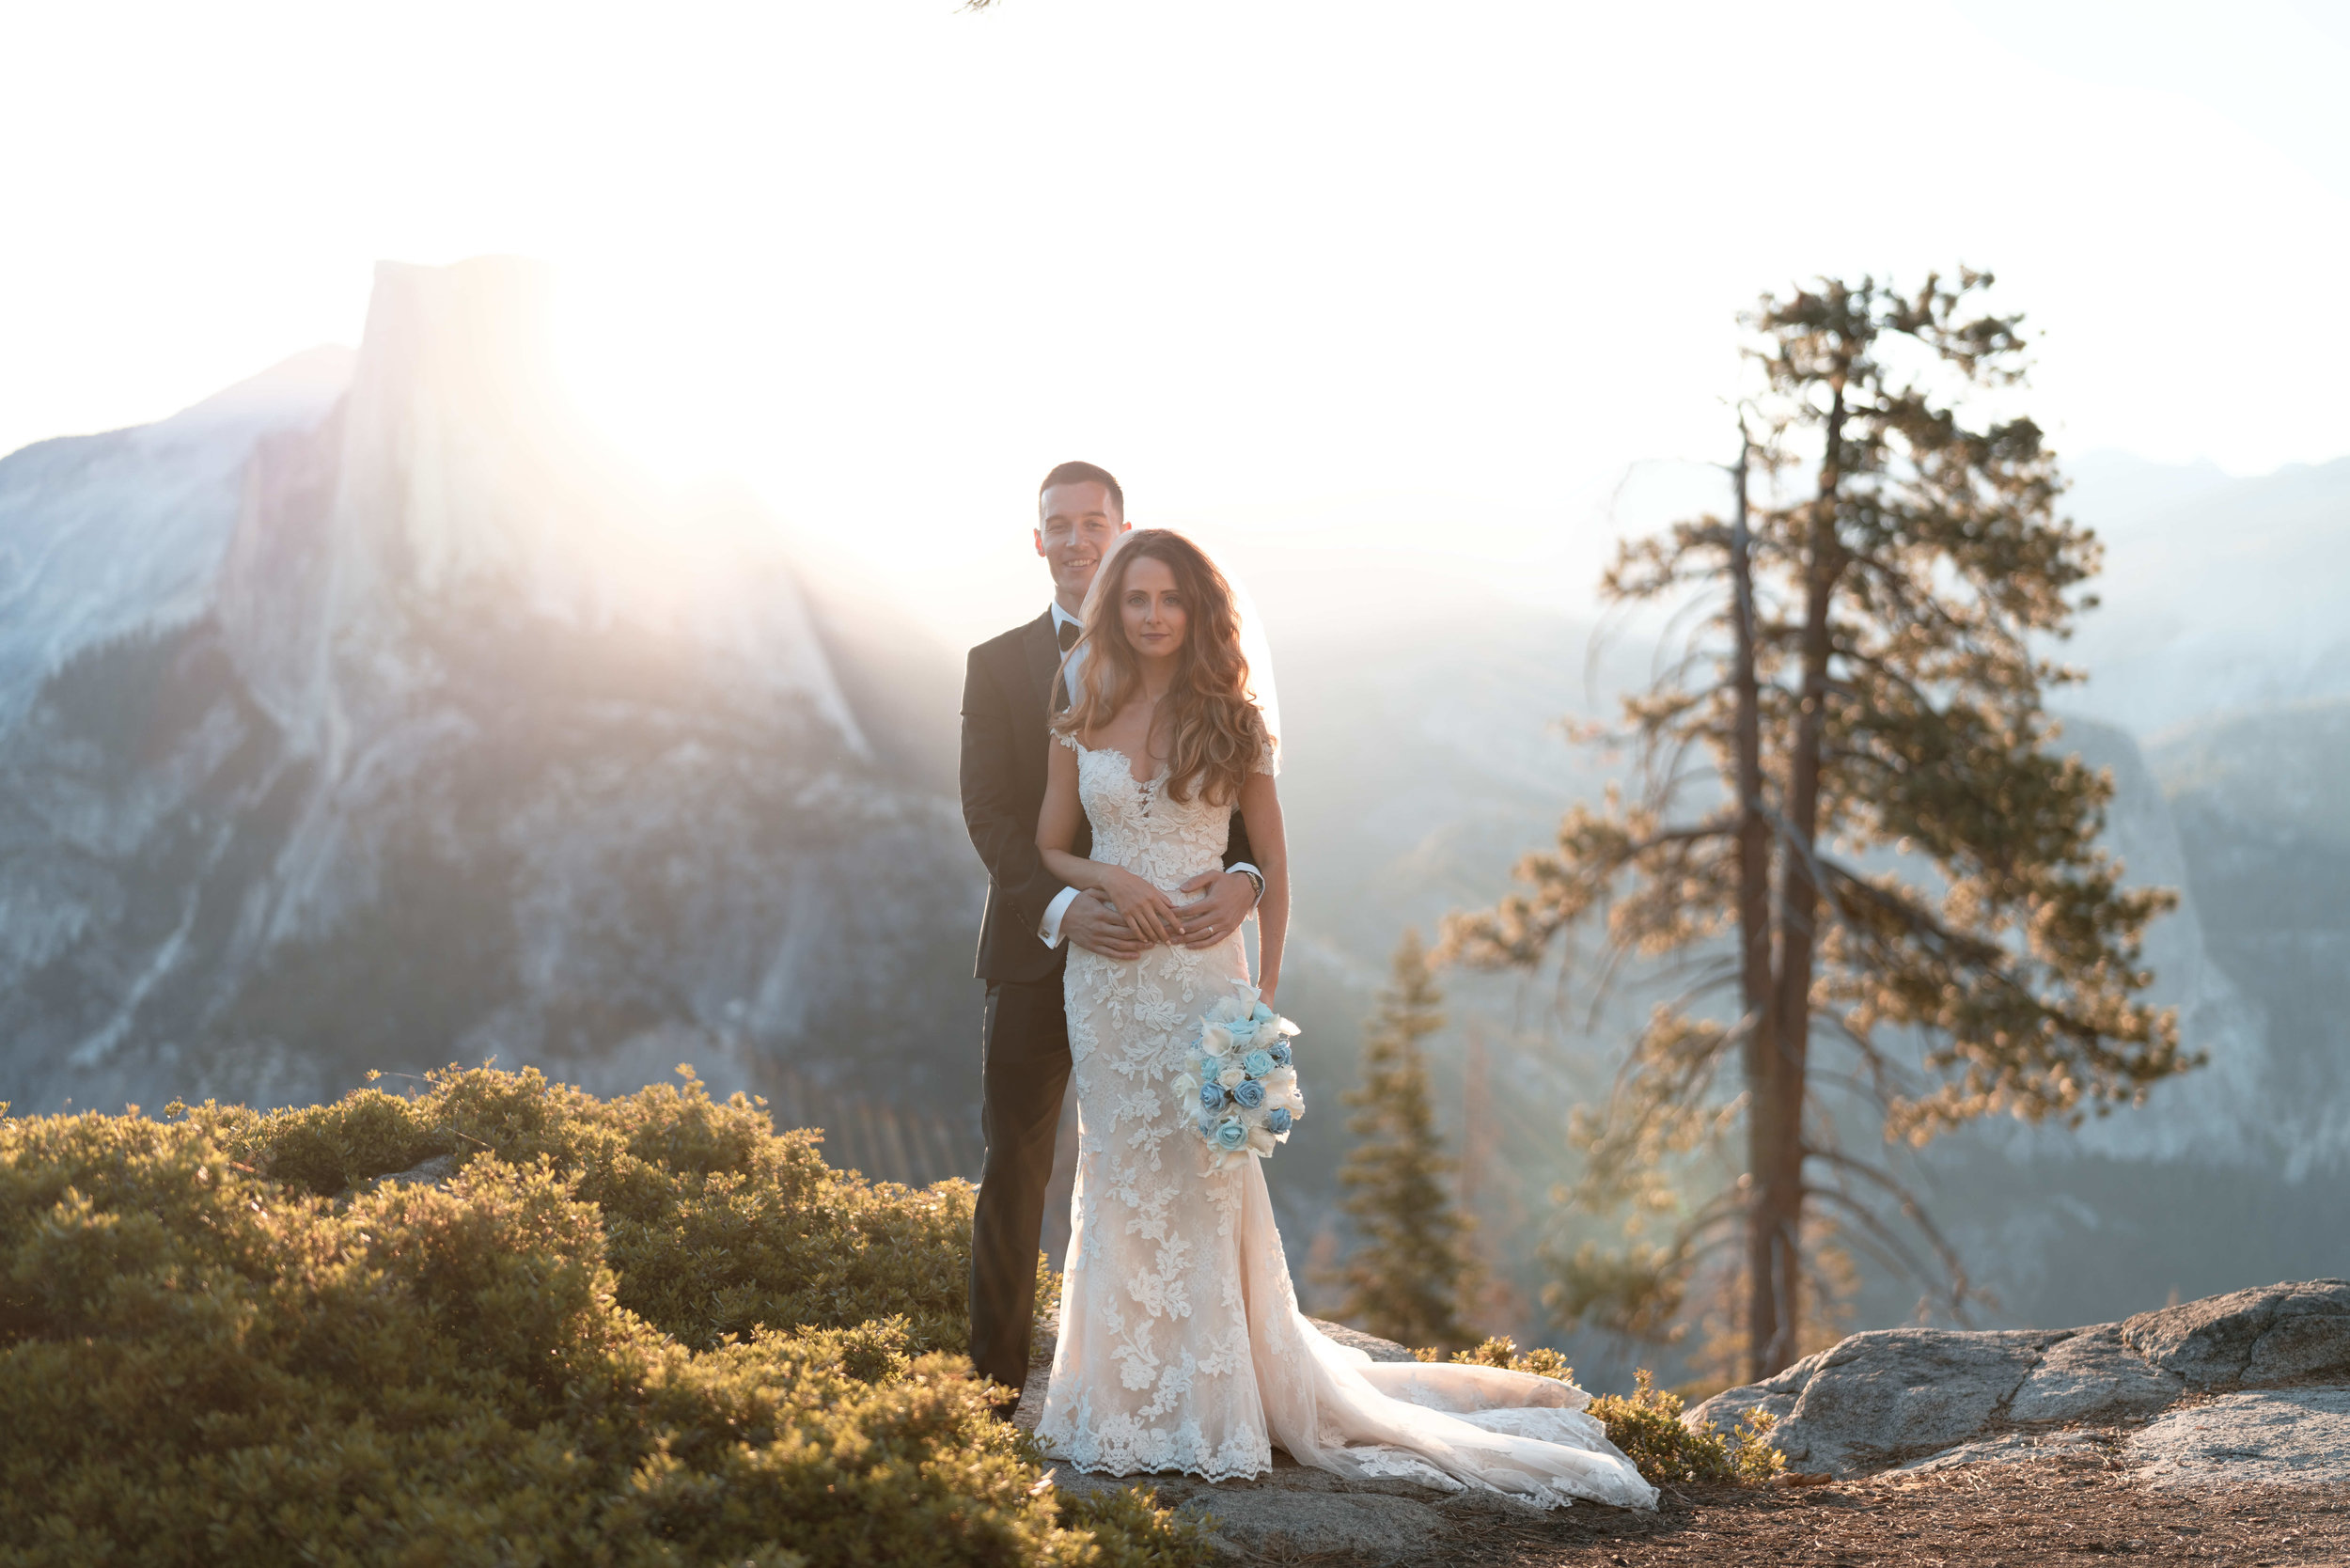 yosemite-adventure-wedding-amyjames (46).jpg